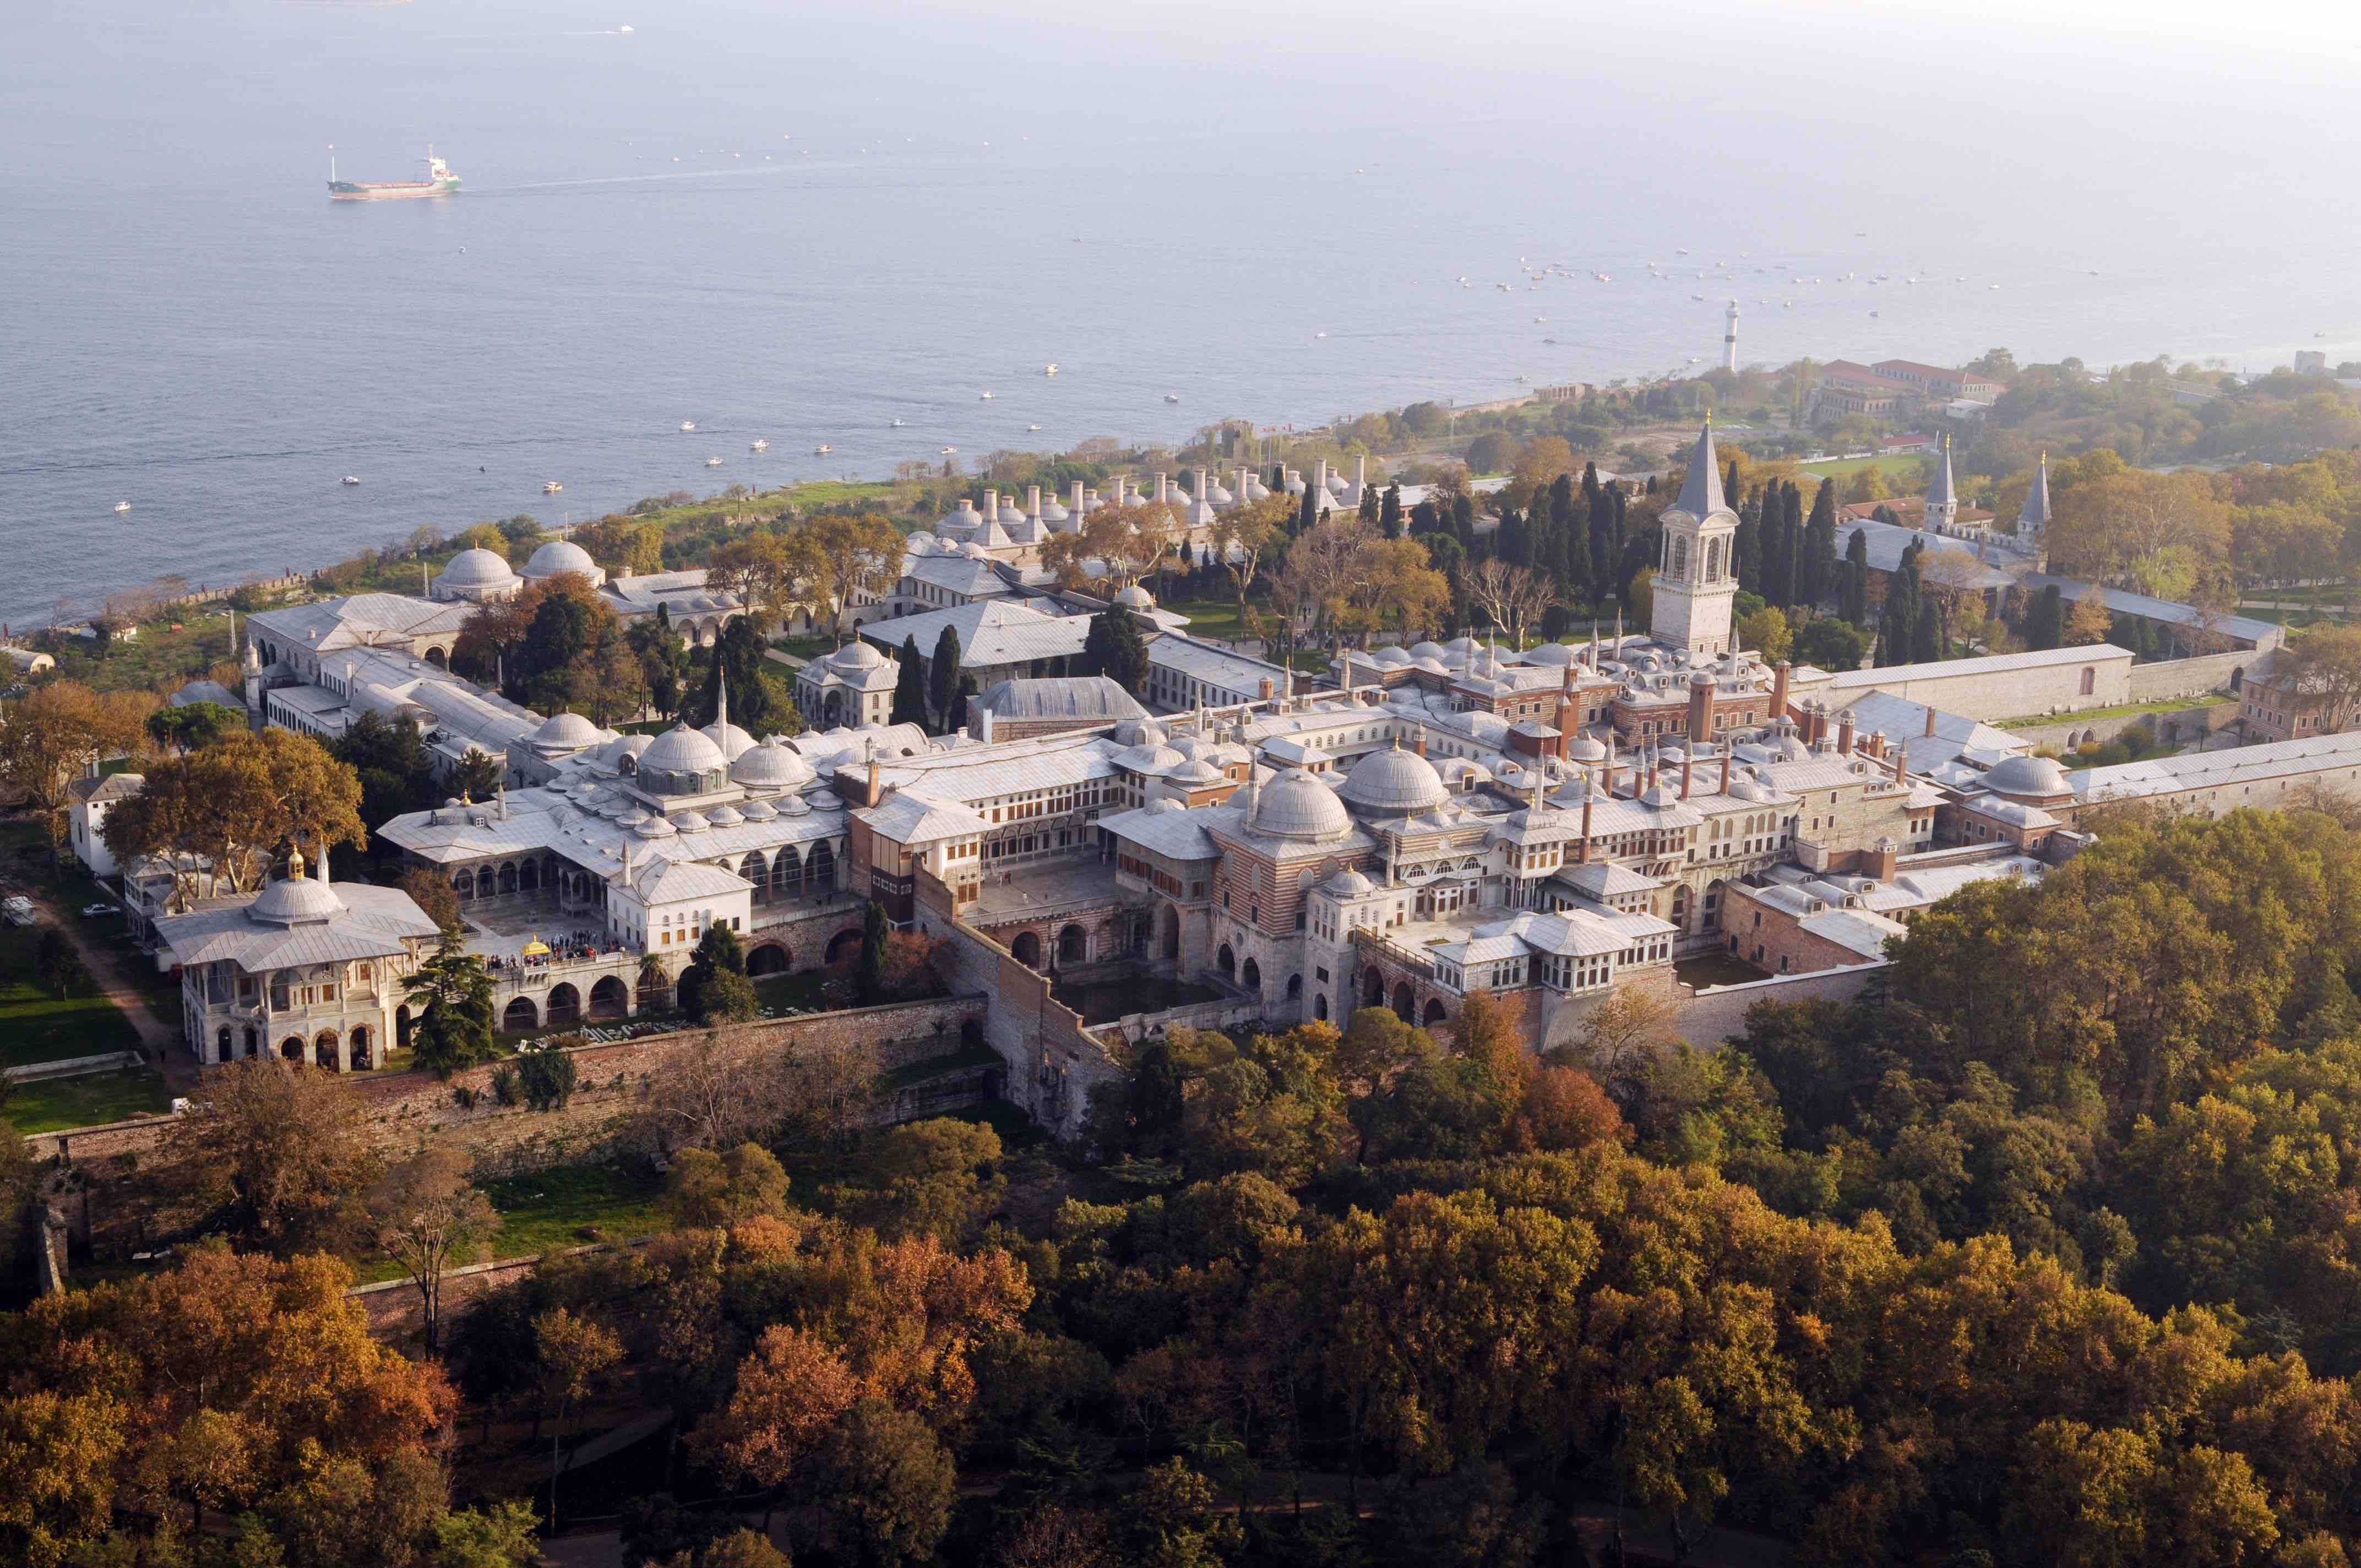 The sprawling Topkapi Palace located on the historical peninsula in Istanbul, Turkey.